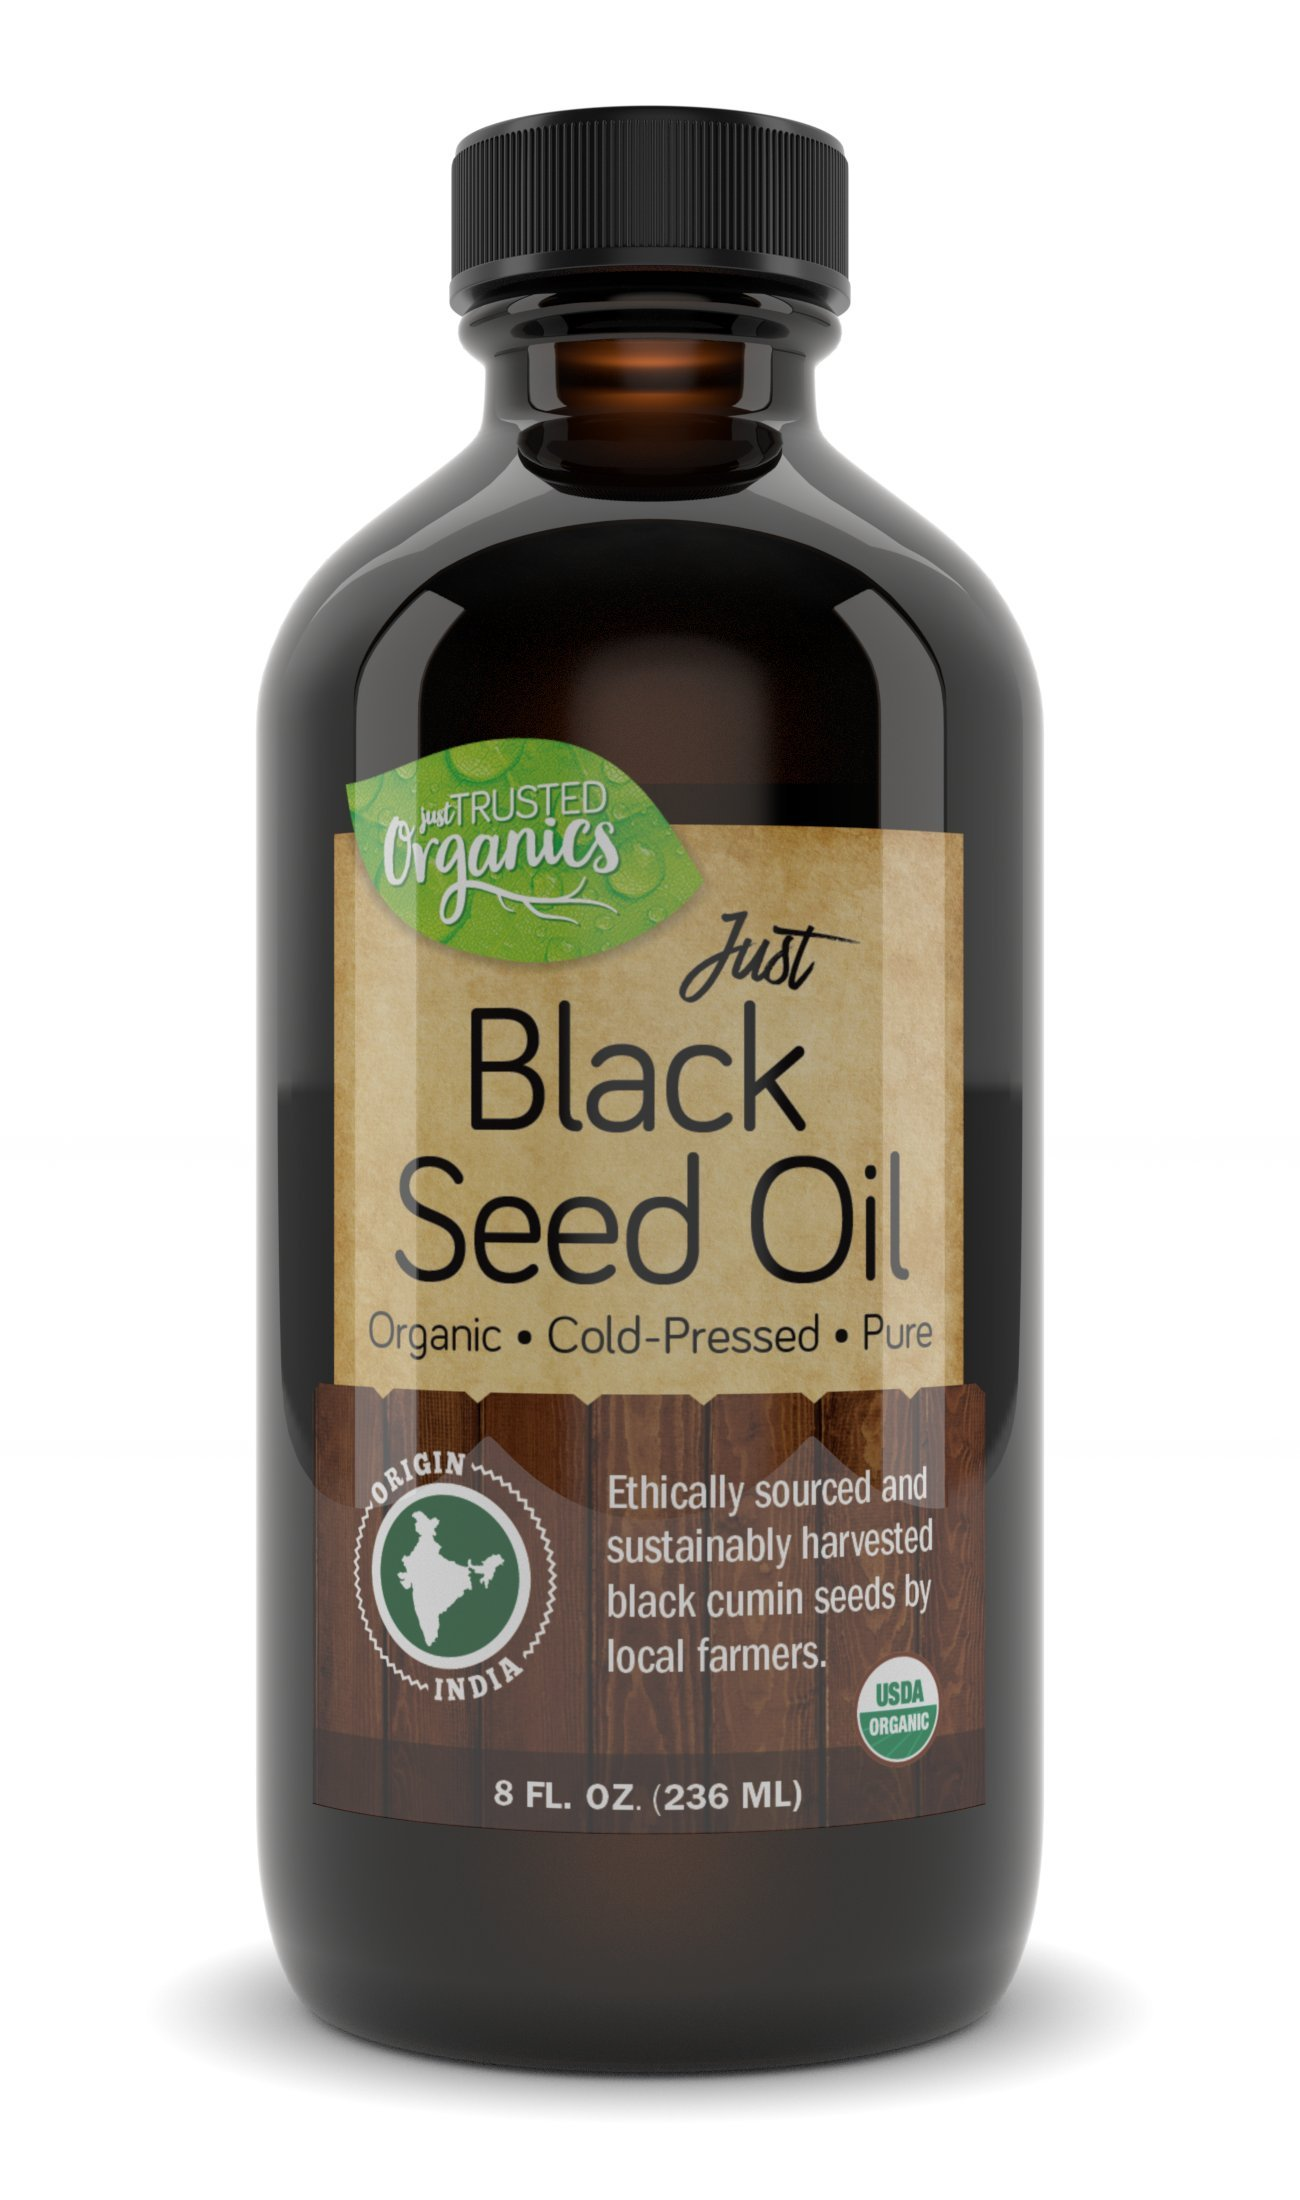 Black Seed Oil by Trusted Organics - Organic, Cold-Pressed, Additive-Free, Pure Nigella Sativa Oil - Great for Skin, Inflammation, and Appetite Control - Money Back Guarantee - 8 Fl oz Glass Bottle